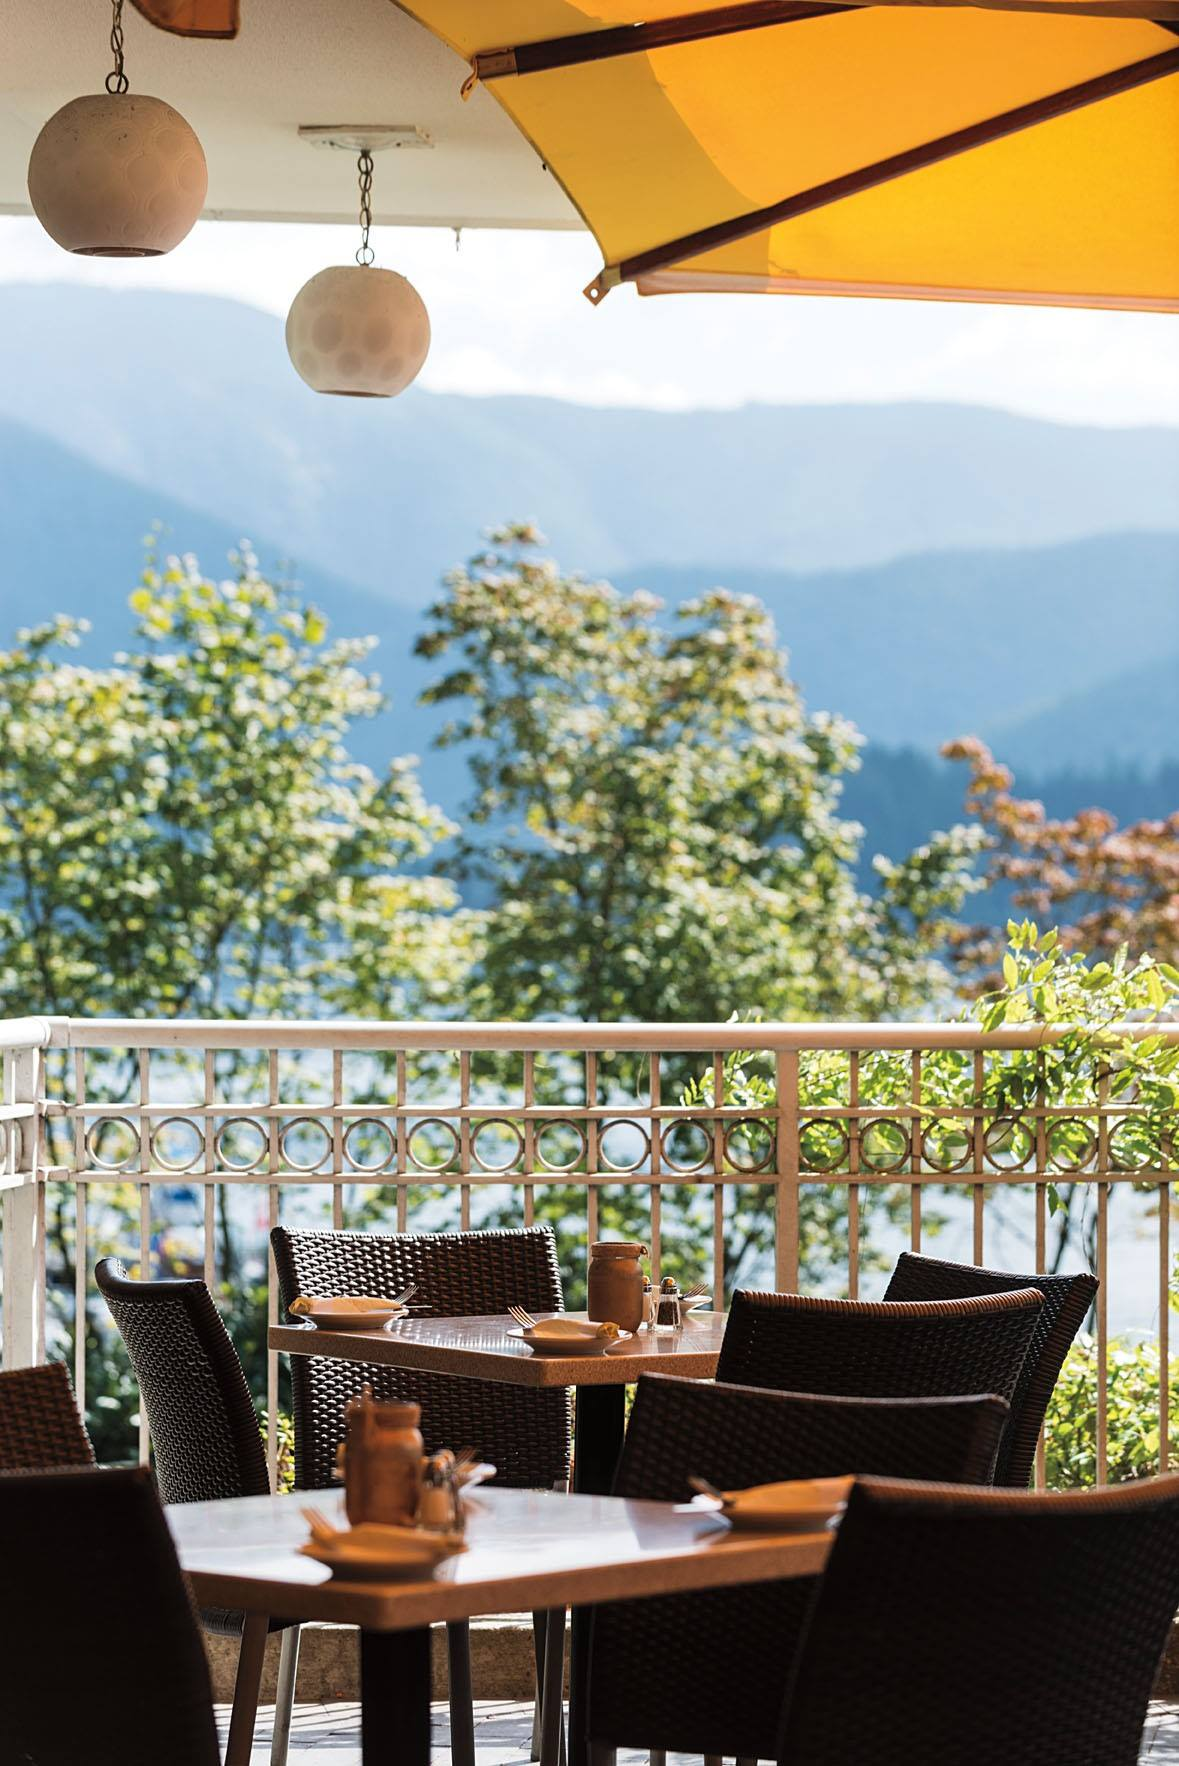 Where to eat in North Vancouver